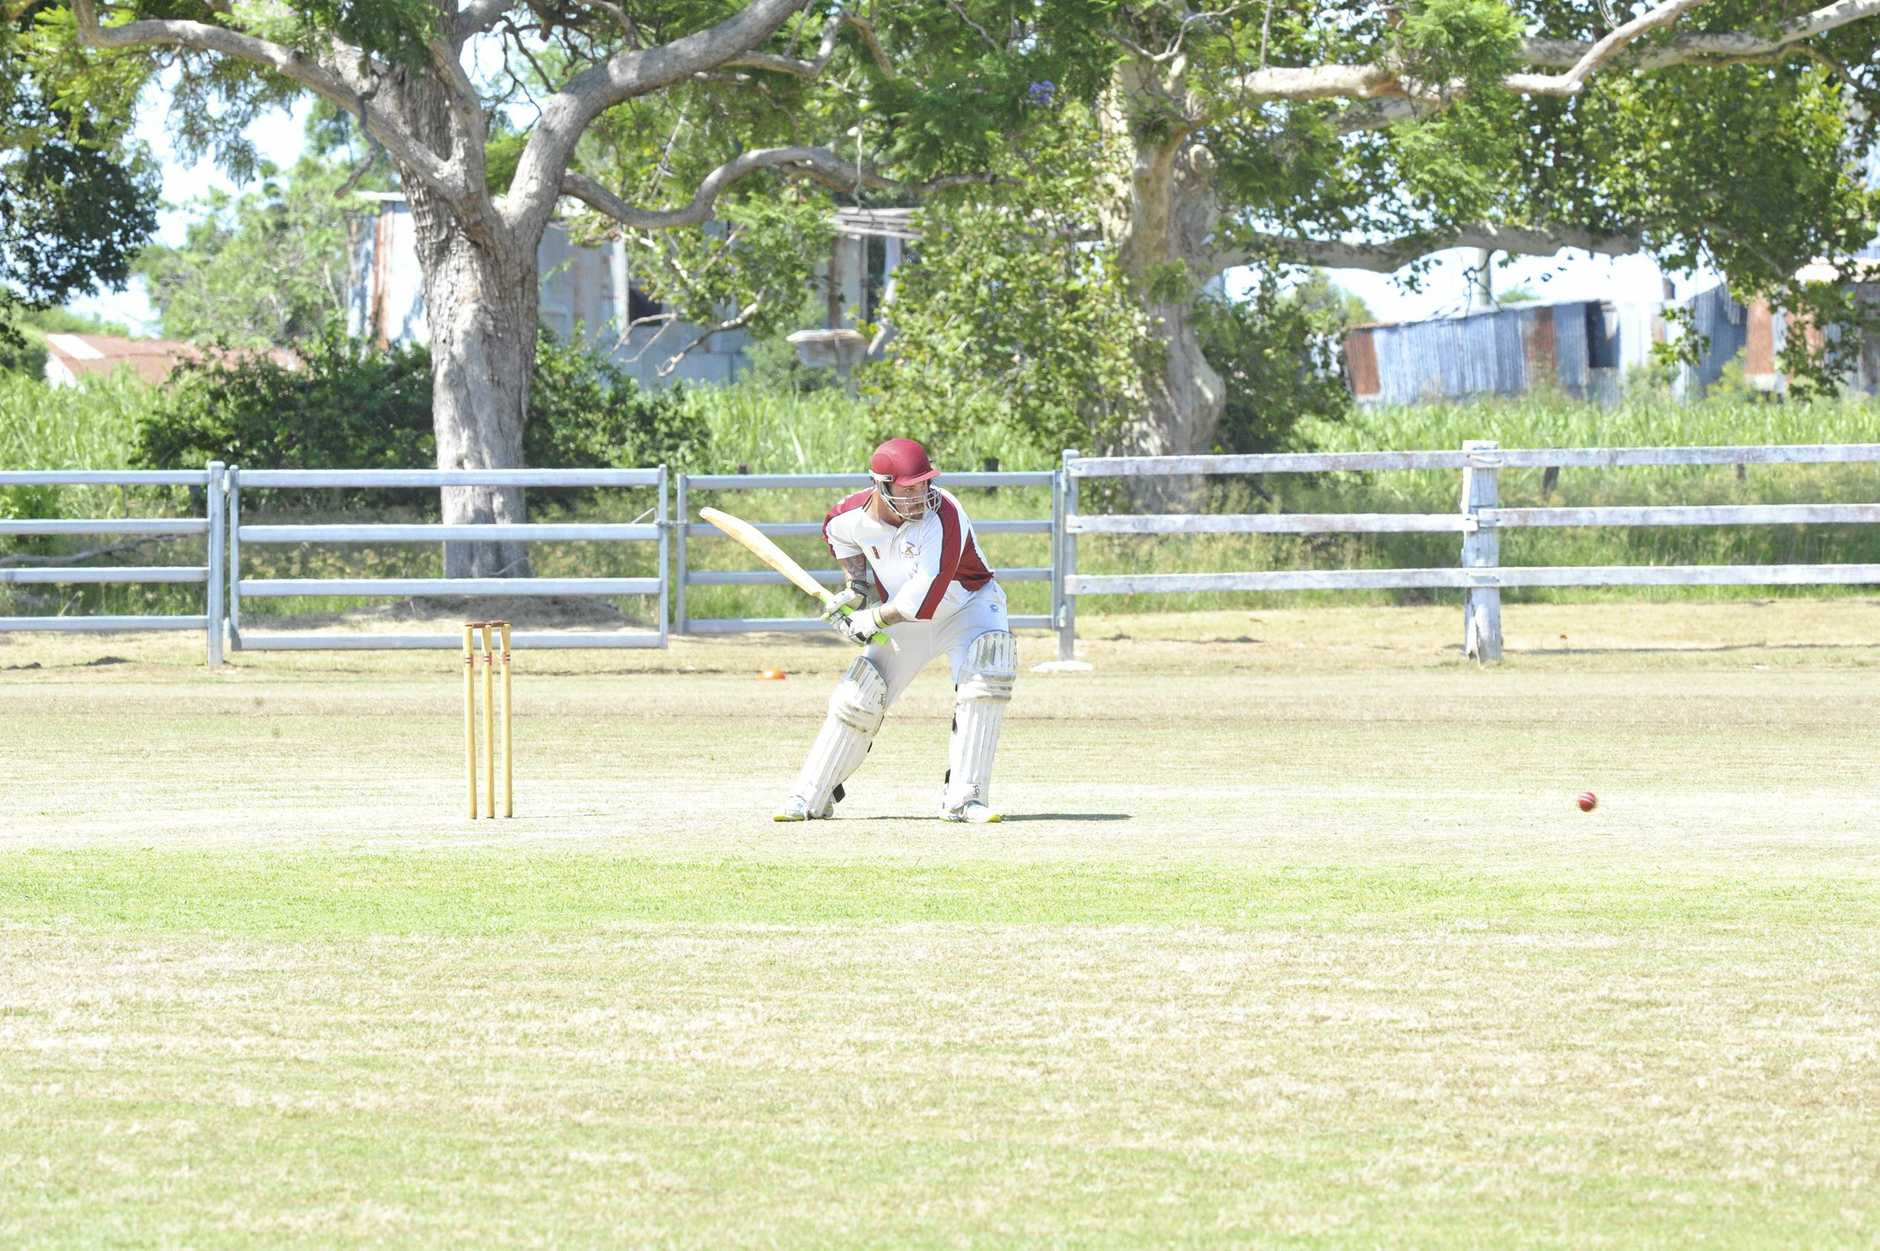 Beau Severill from the Brothers cricket club playing against South Services